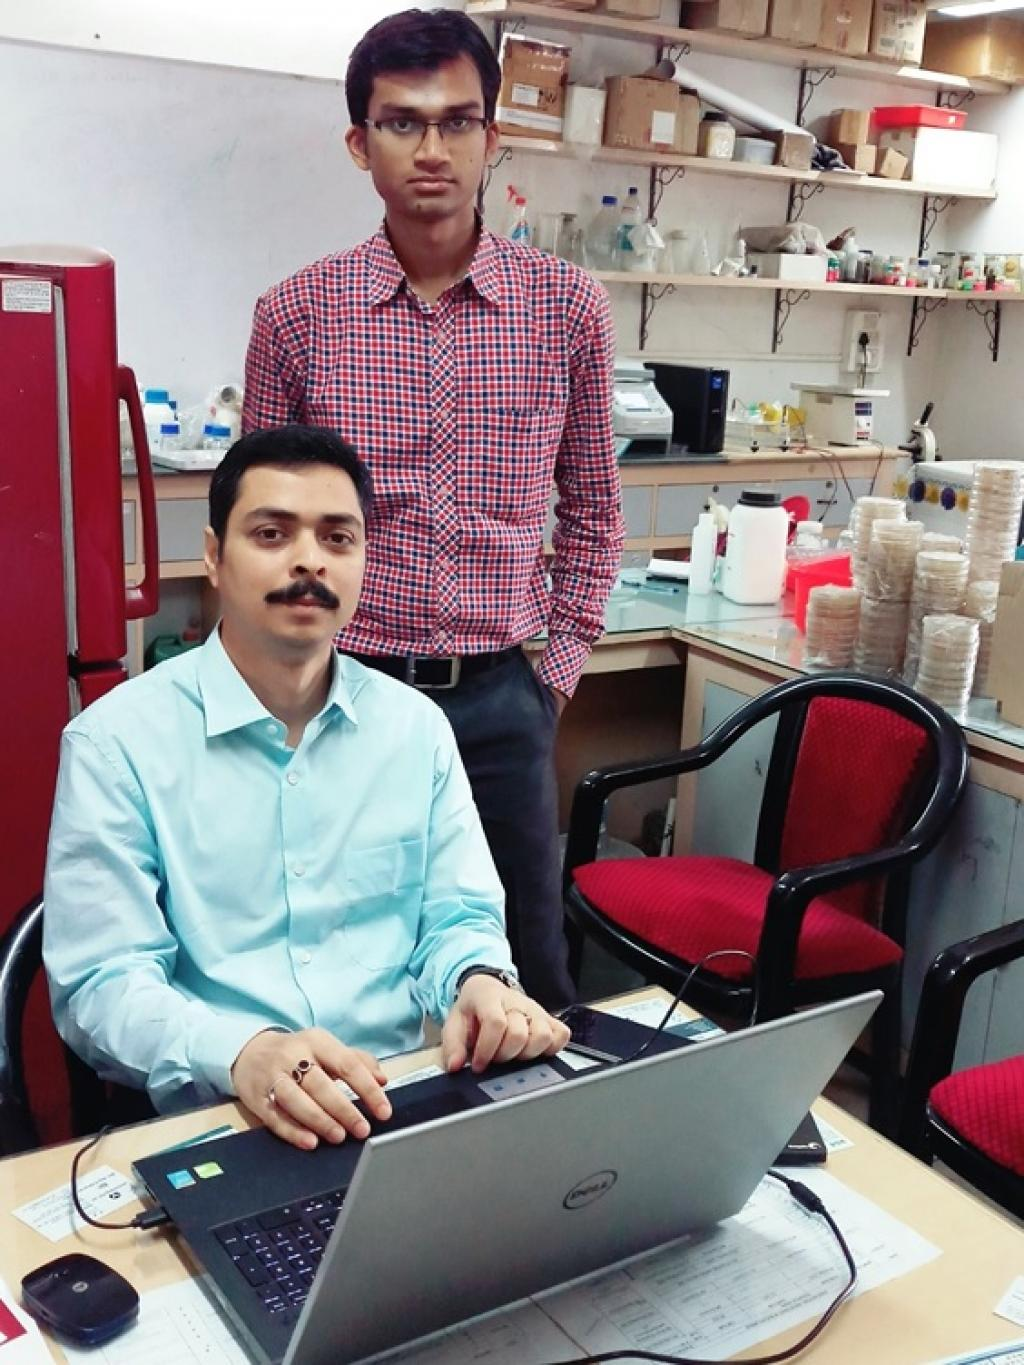 Dr Sanjoy Guha Roy (Sitting) and Tanmoy Dey in the research lab. Credit: India Science Wire